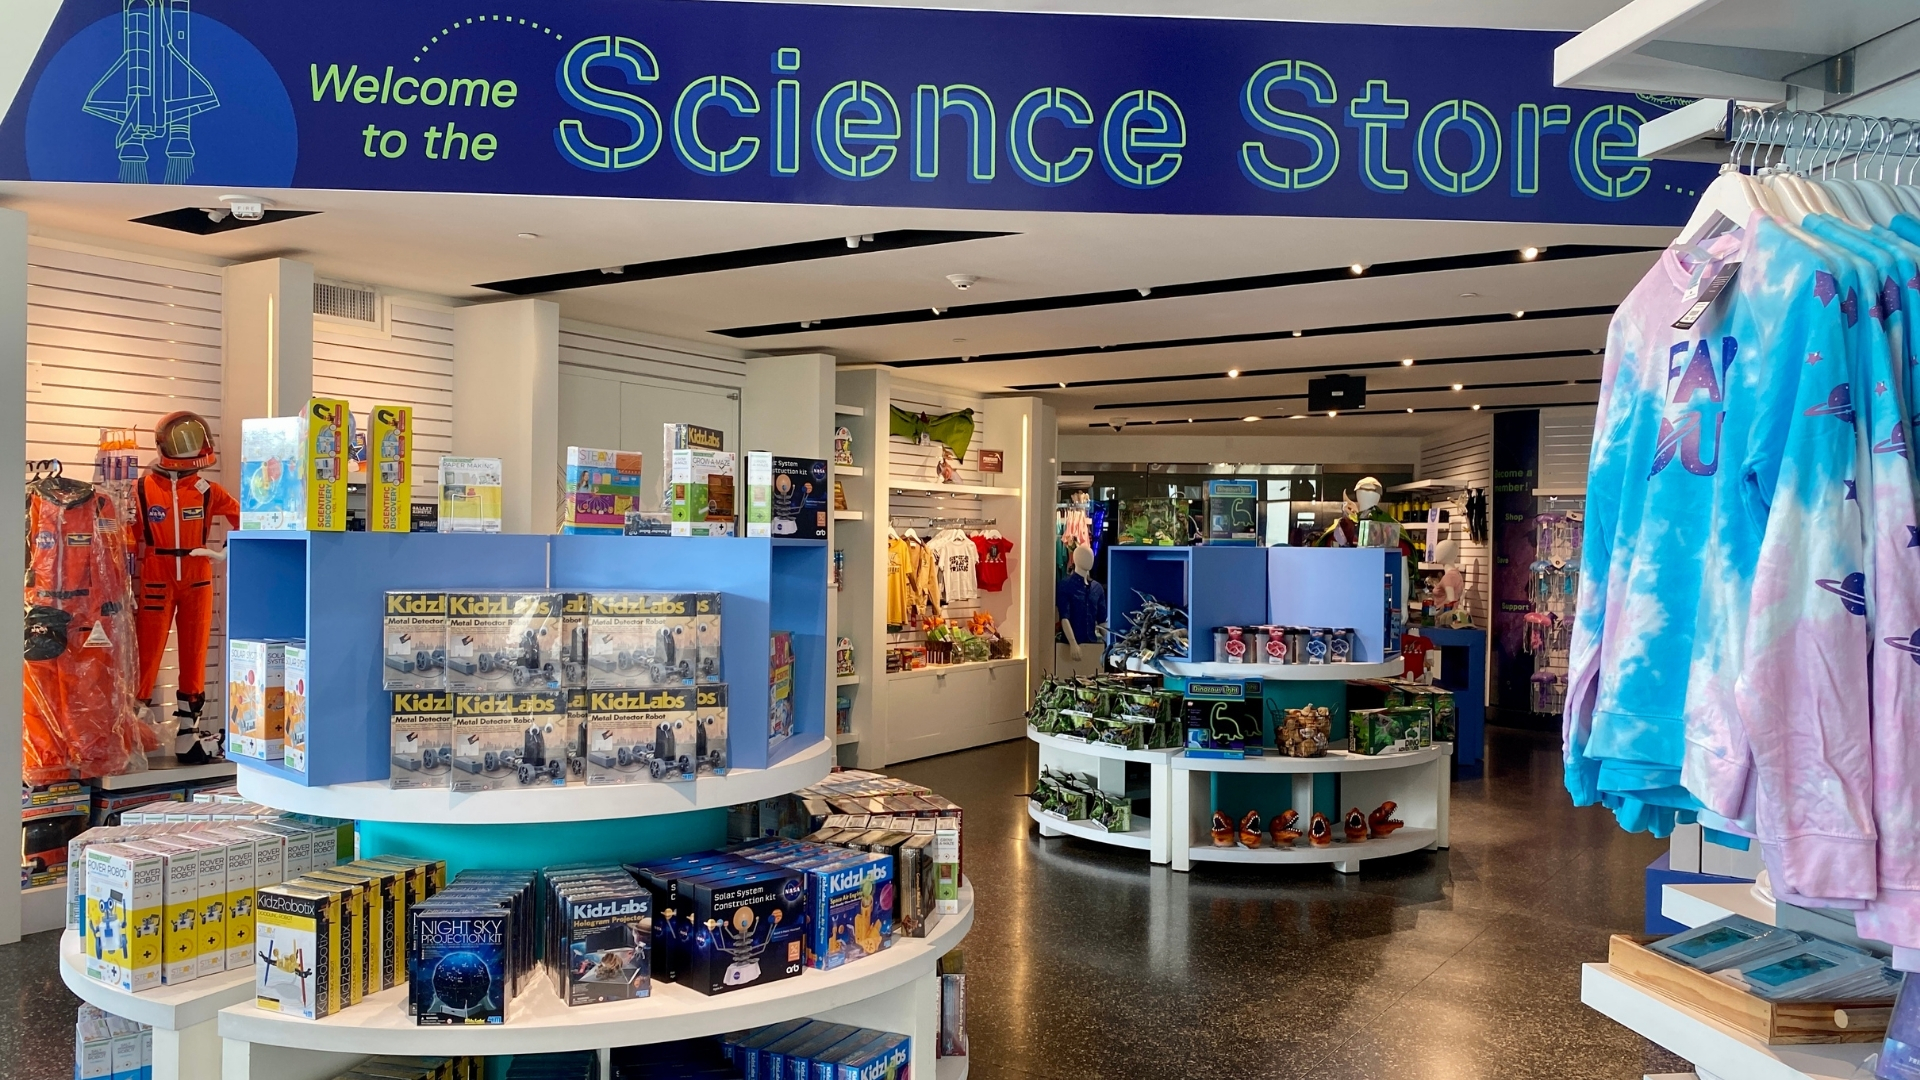 Frost Science Science Store